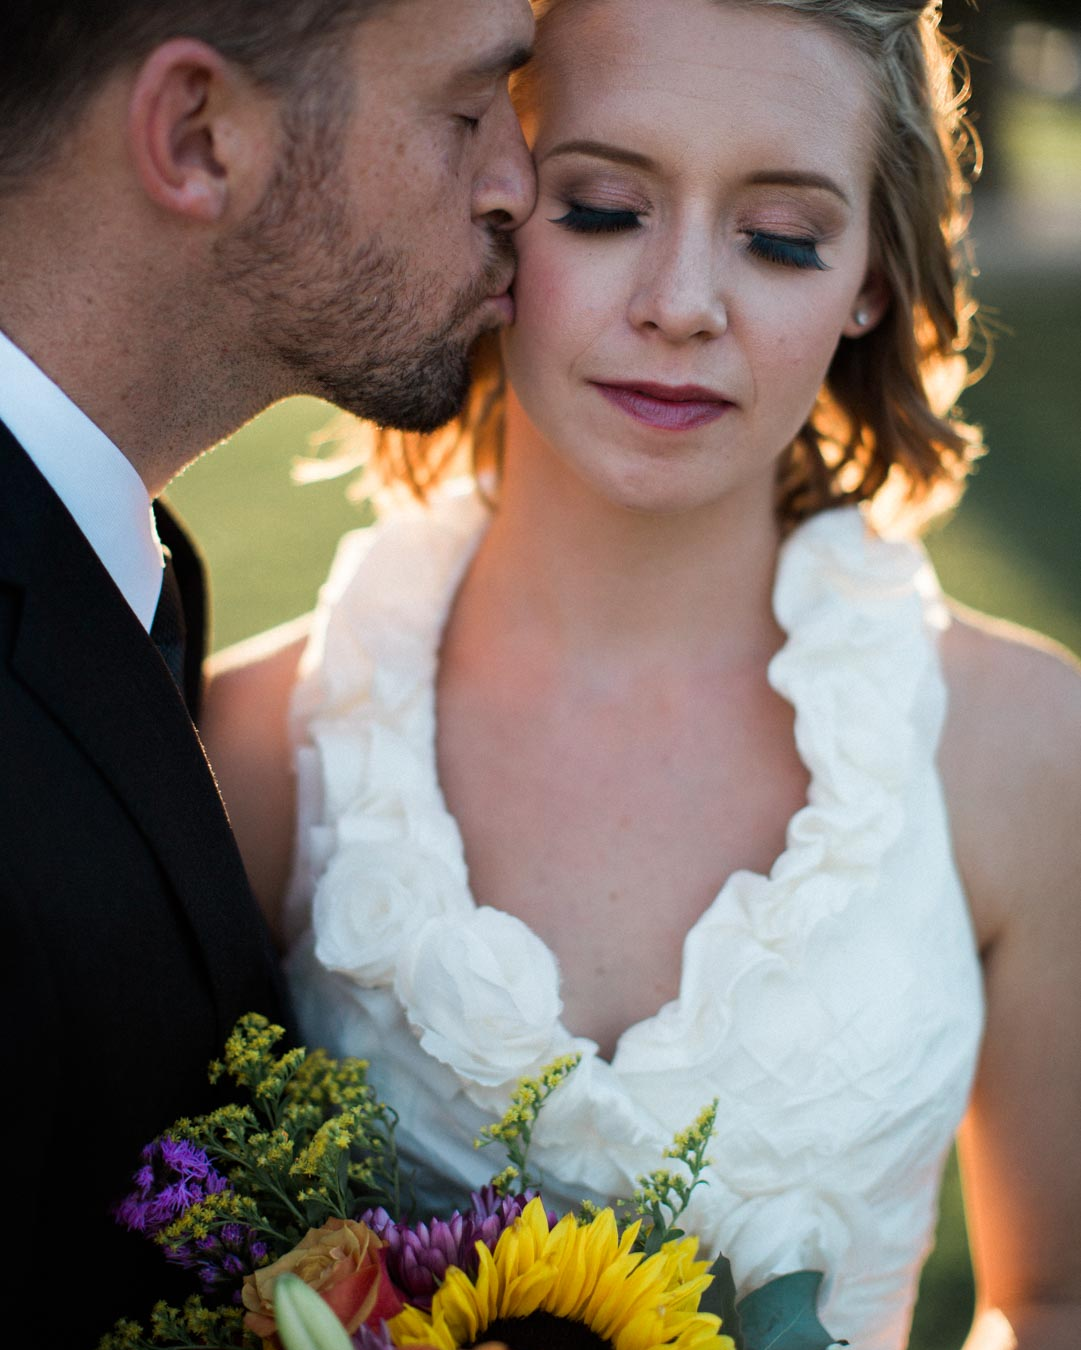 Fort Worth wedding photographer, bridal portraits, Dallas wedding photographer, Fort Worth photographer, Dallas photographer, bridal shoot, floral photographer